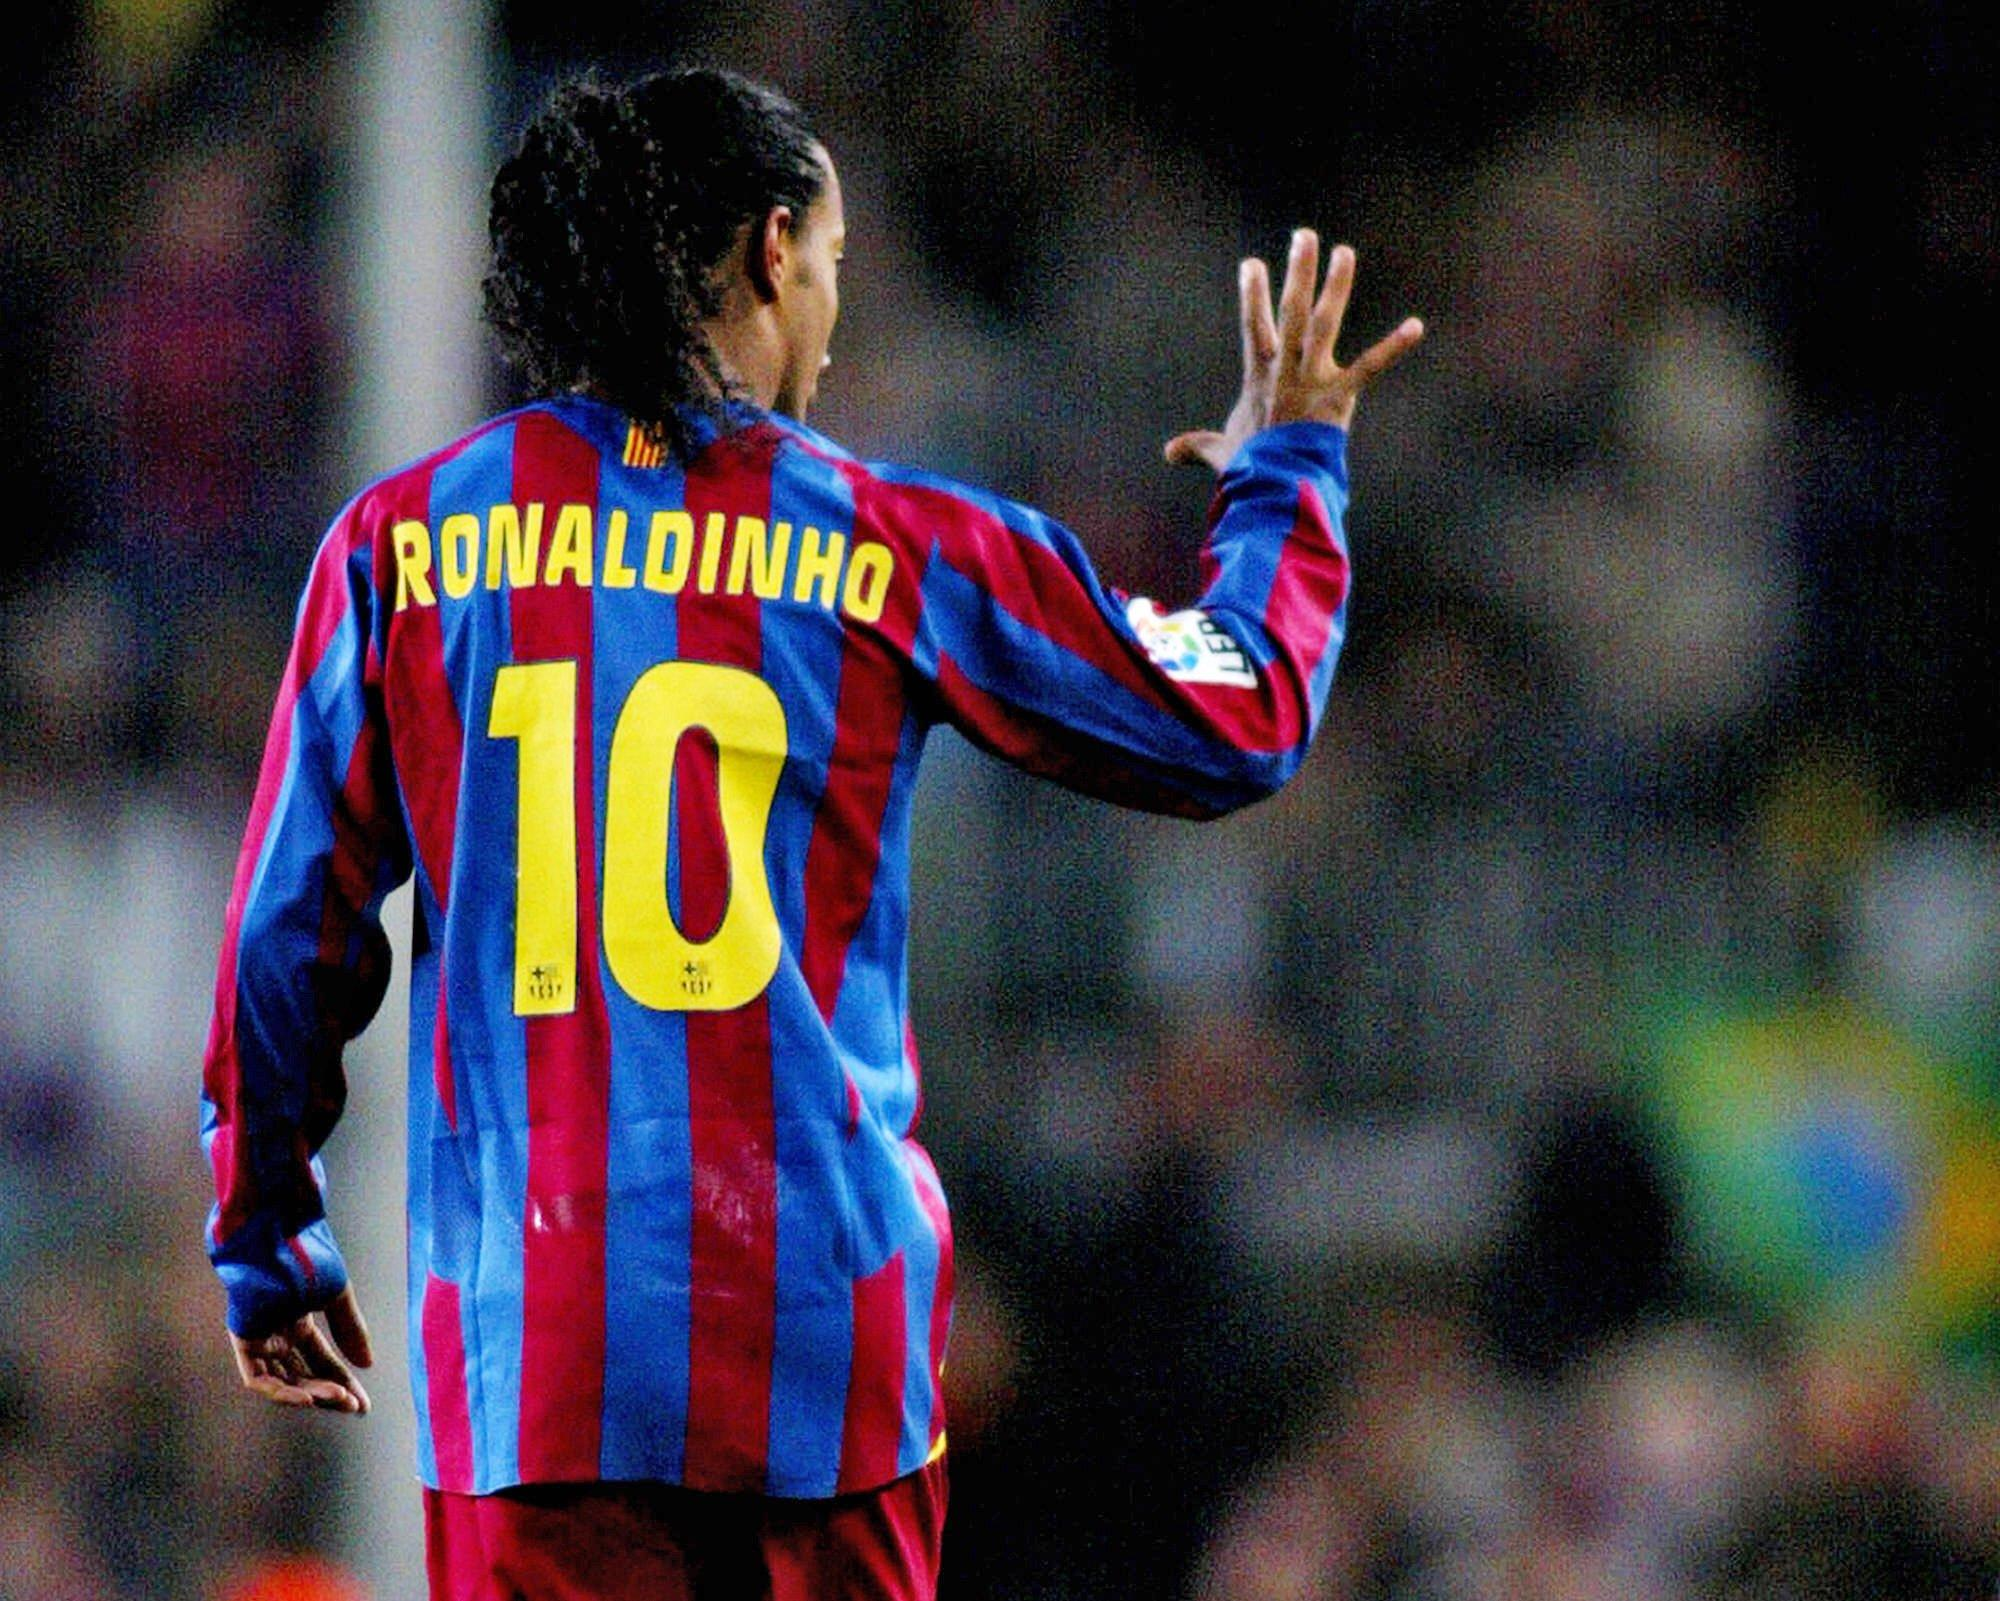 Ronaldinho was the previous holder of the Barcelona No10 jersey